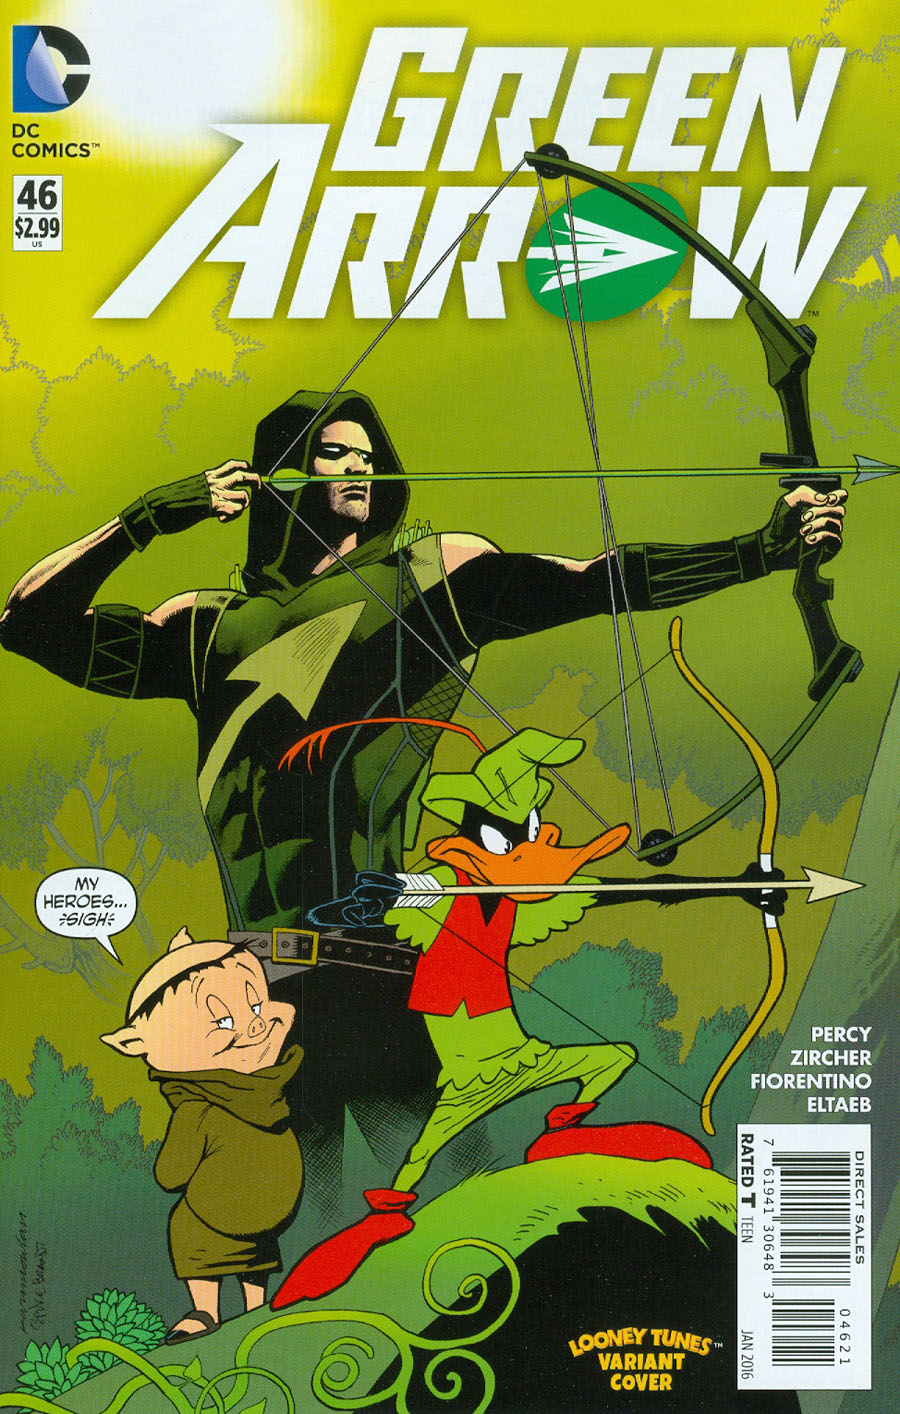 Green Arrow Vol 6 #46 Cover B Variant Kevin Nowlan & Warner Bros Animation DC x Looney Tunes Cover